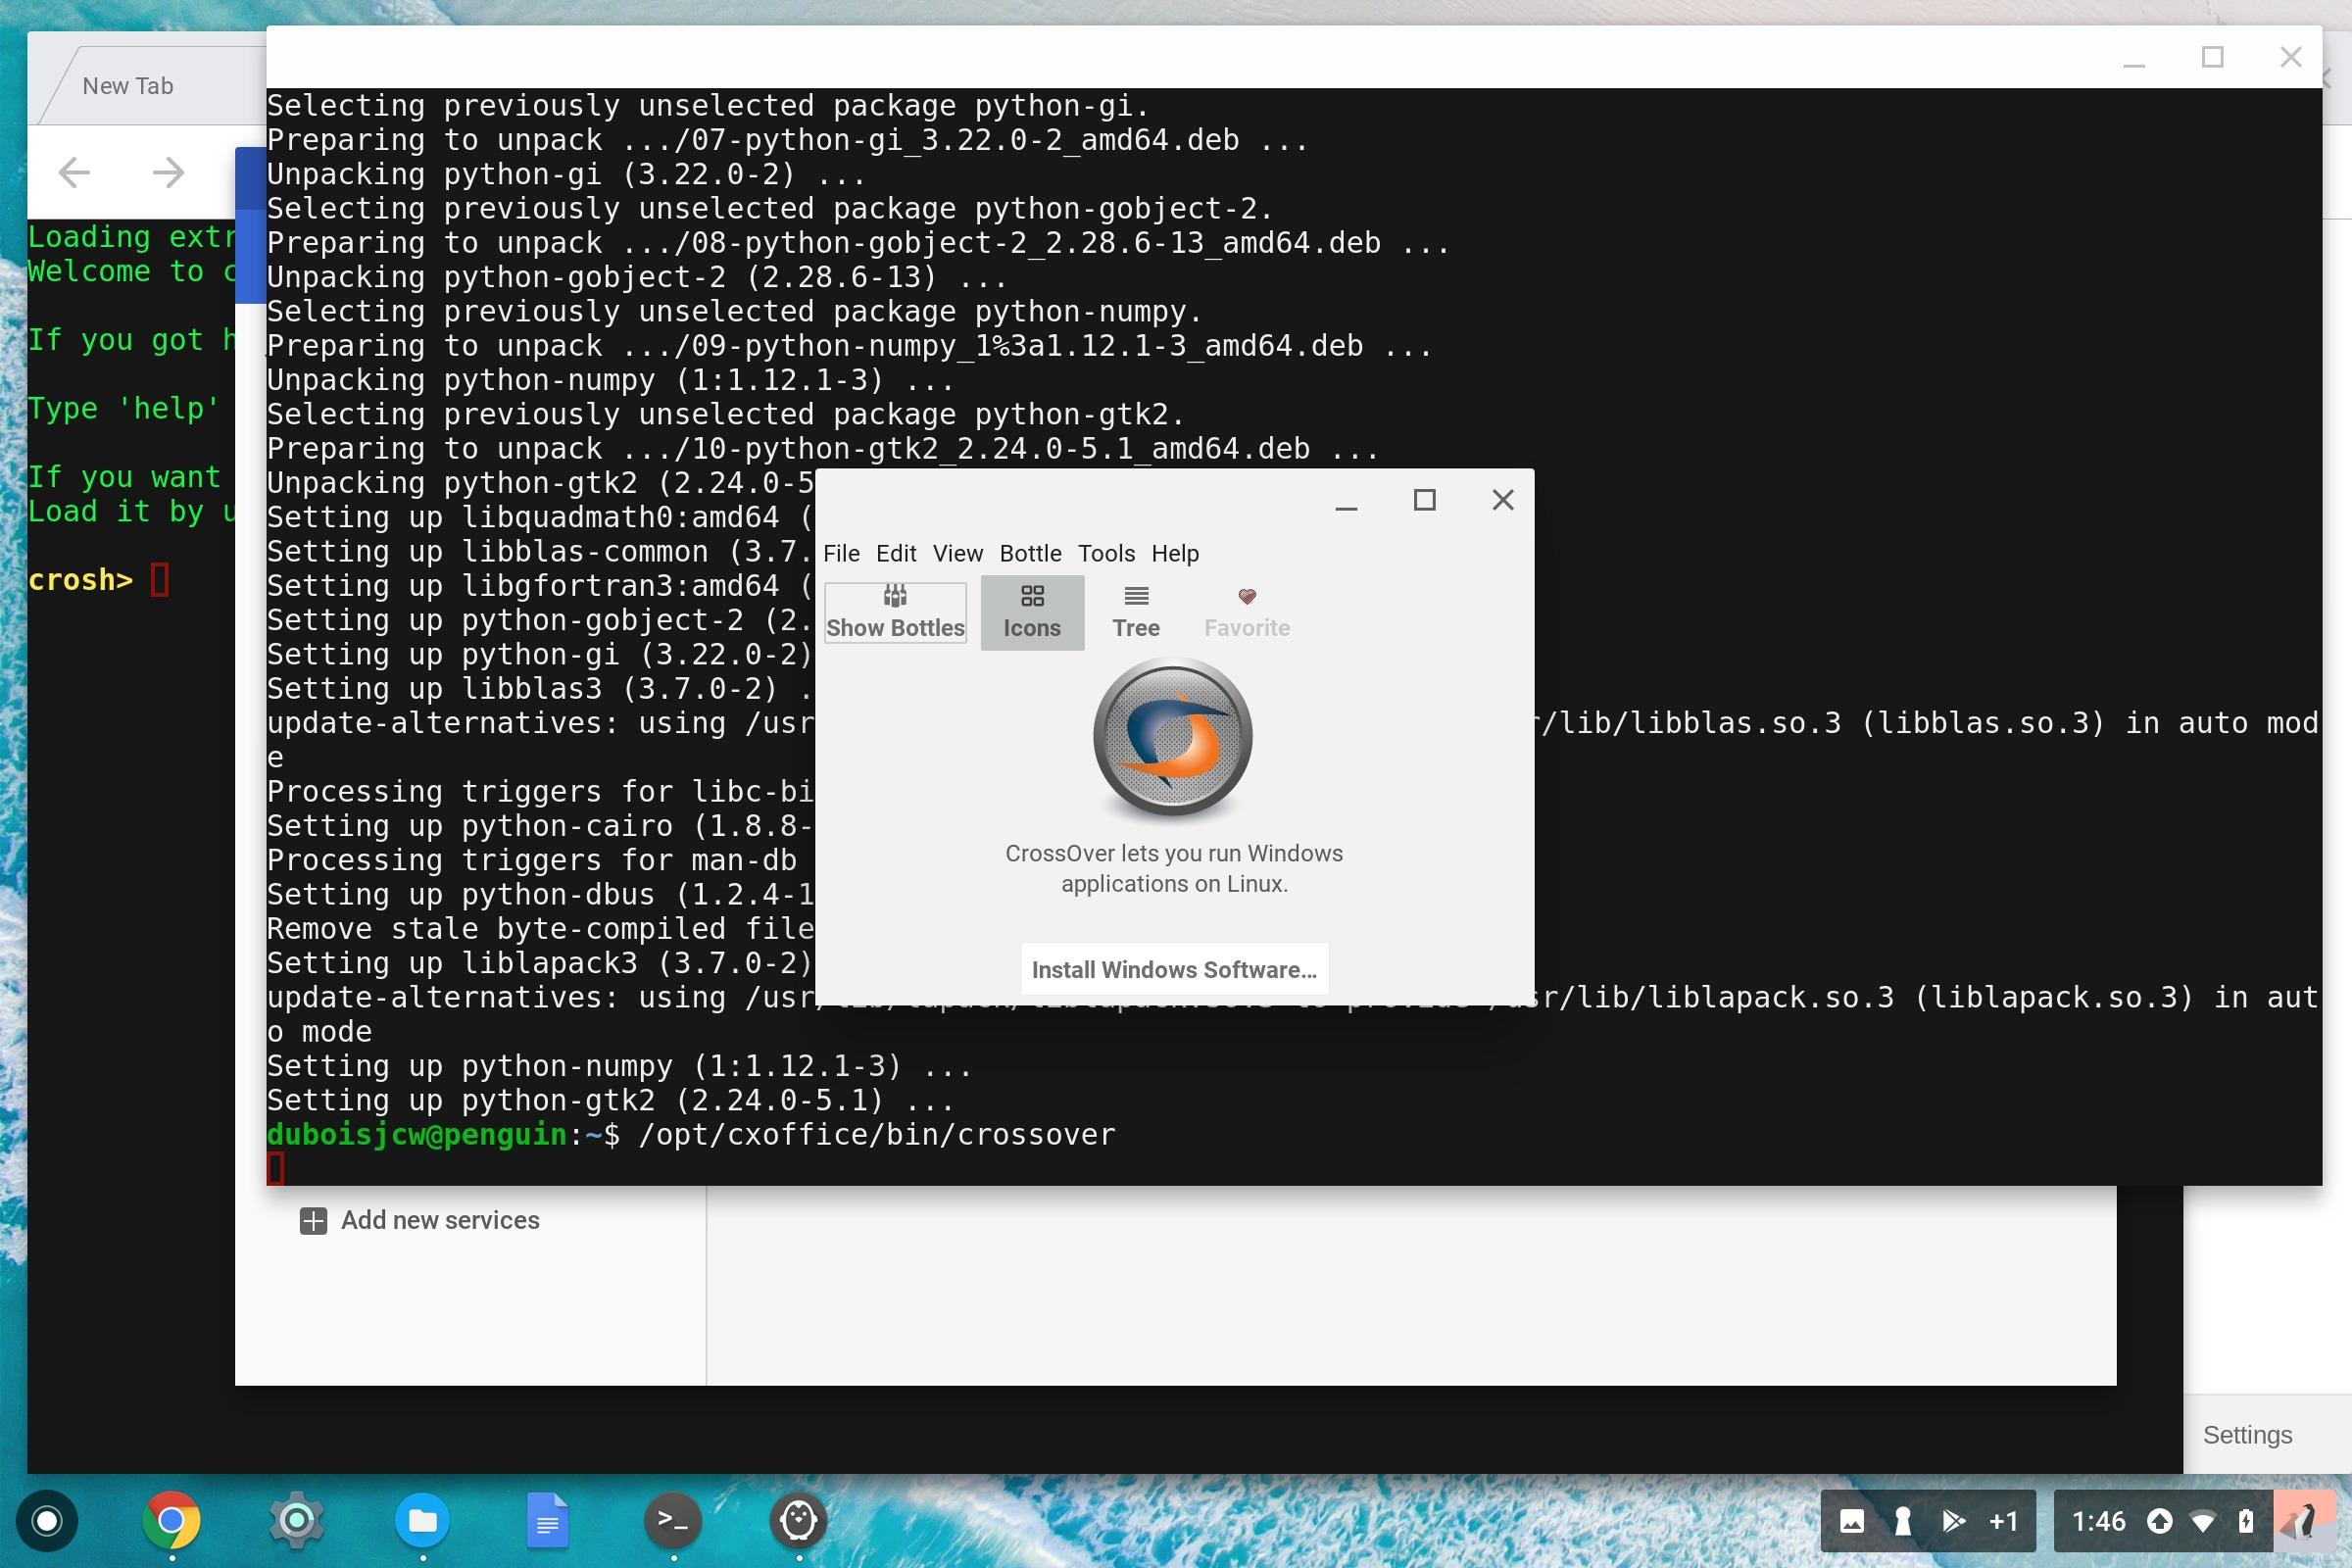 Chromebooks with Linux can run Windows apps but it's not easy